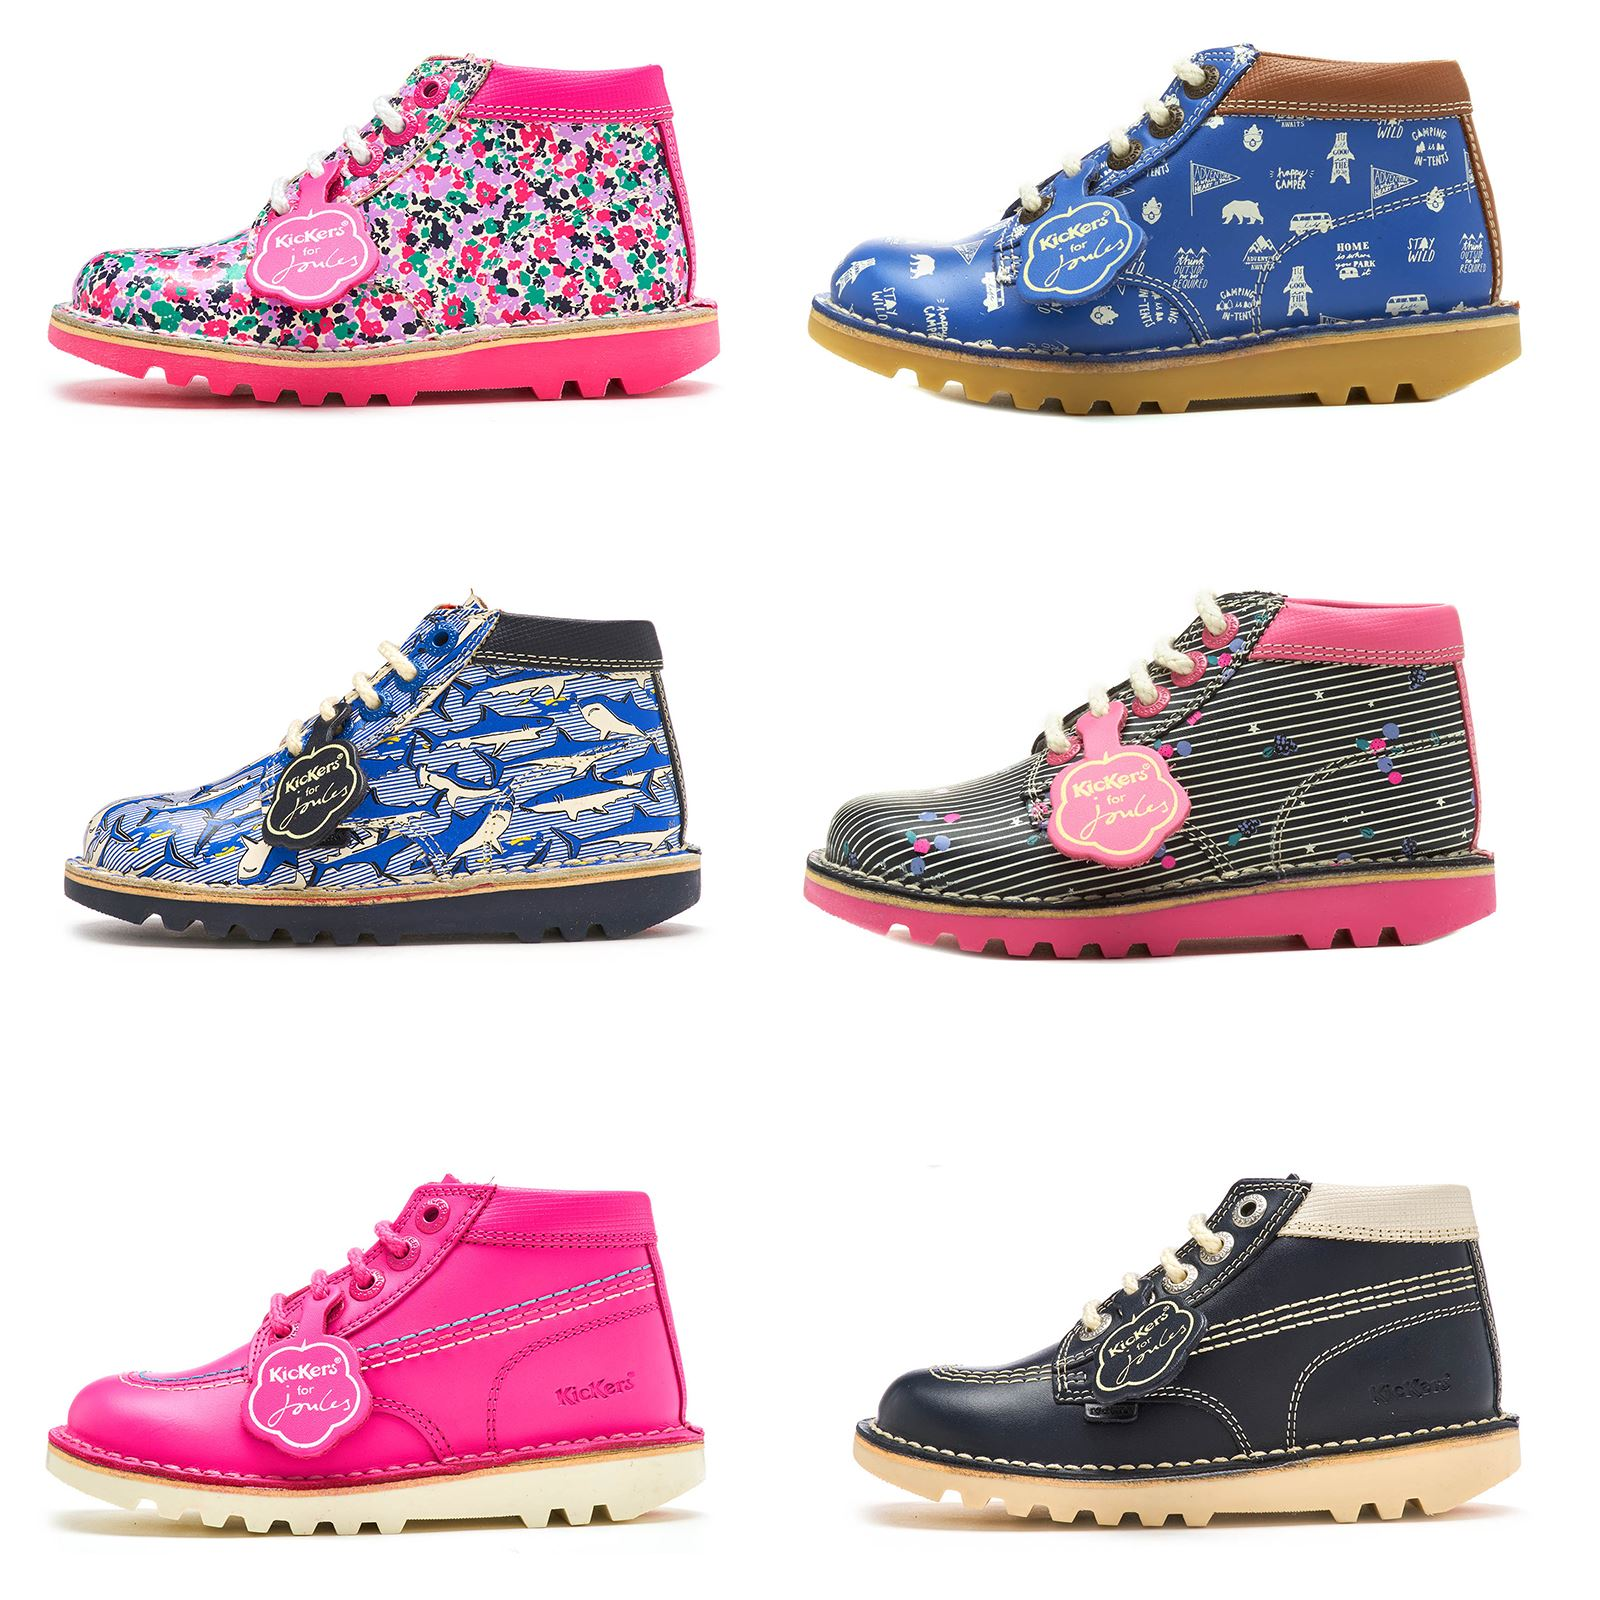 e345b93e404b Details about Kickers for Joules Special Edition Kick Hi Berry Jumble